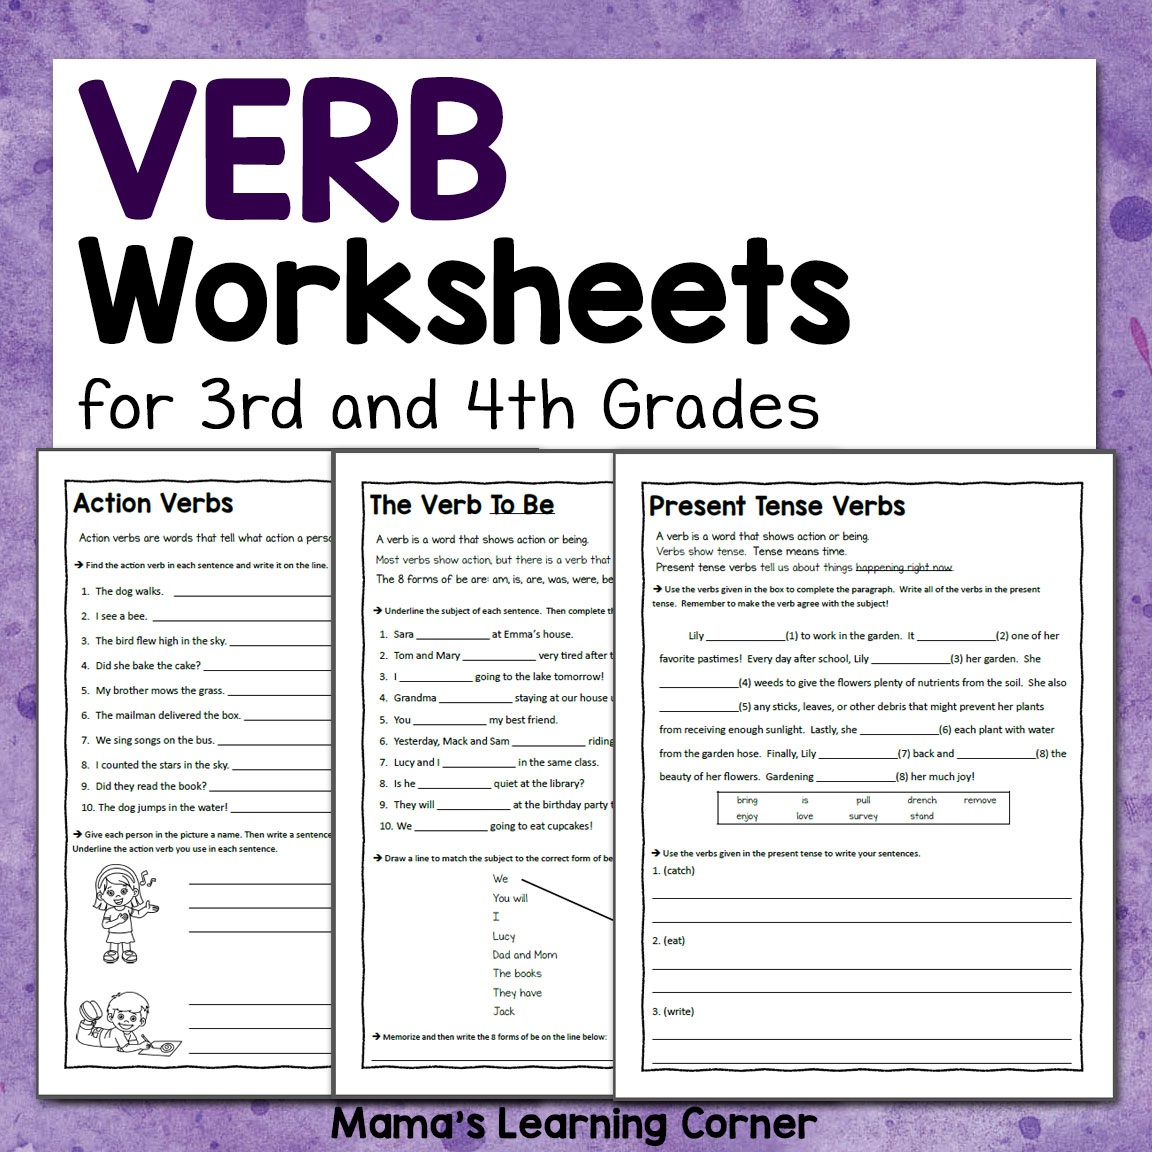 hight resolution of Verb Worksheets for 3rd and 4th Grades - Mamas Learning Corner